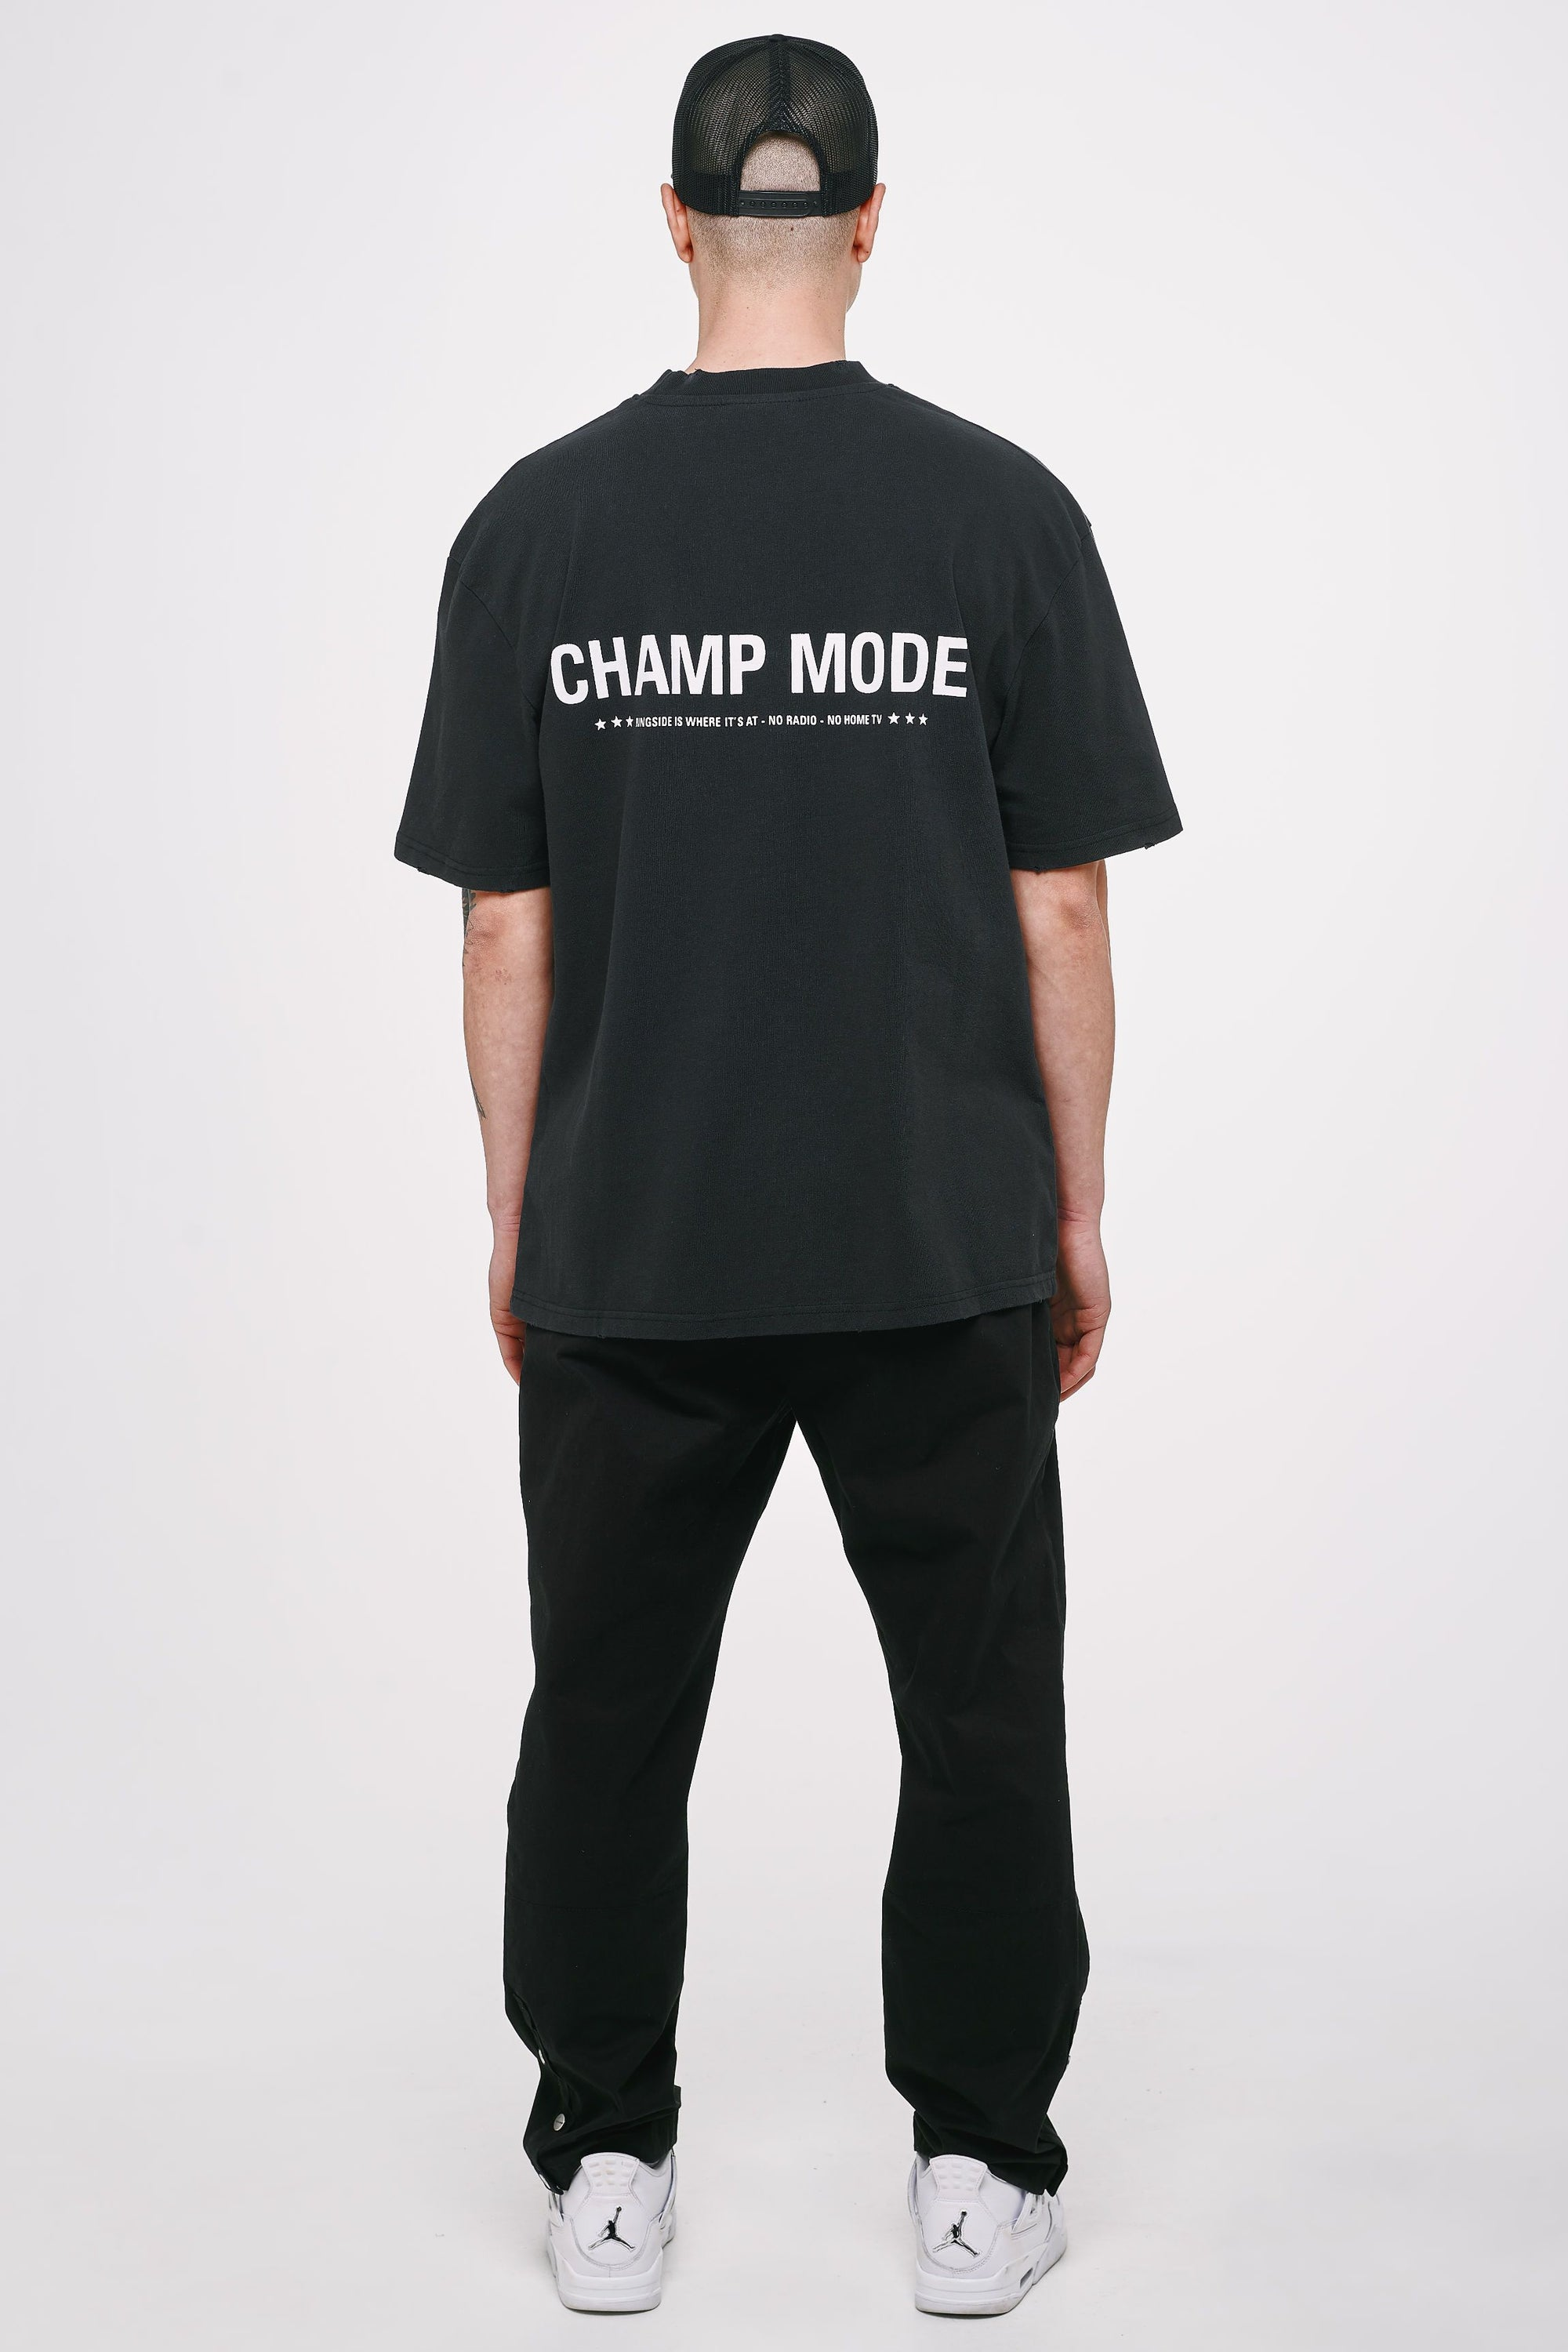 Mike Oversized Tee Vintage Black T-SHIRT Heavyweight Champions